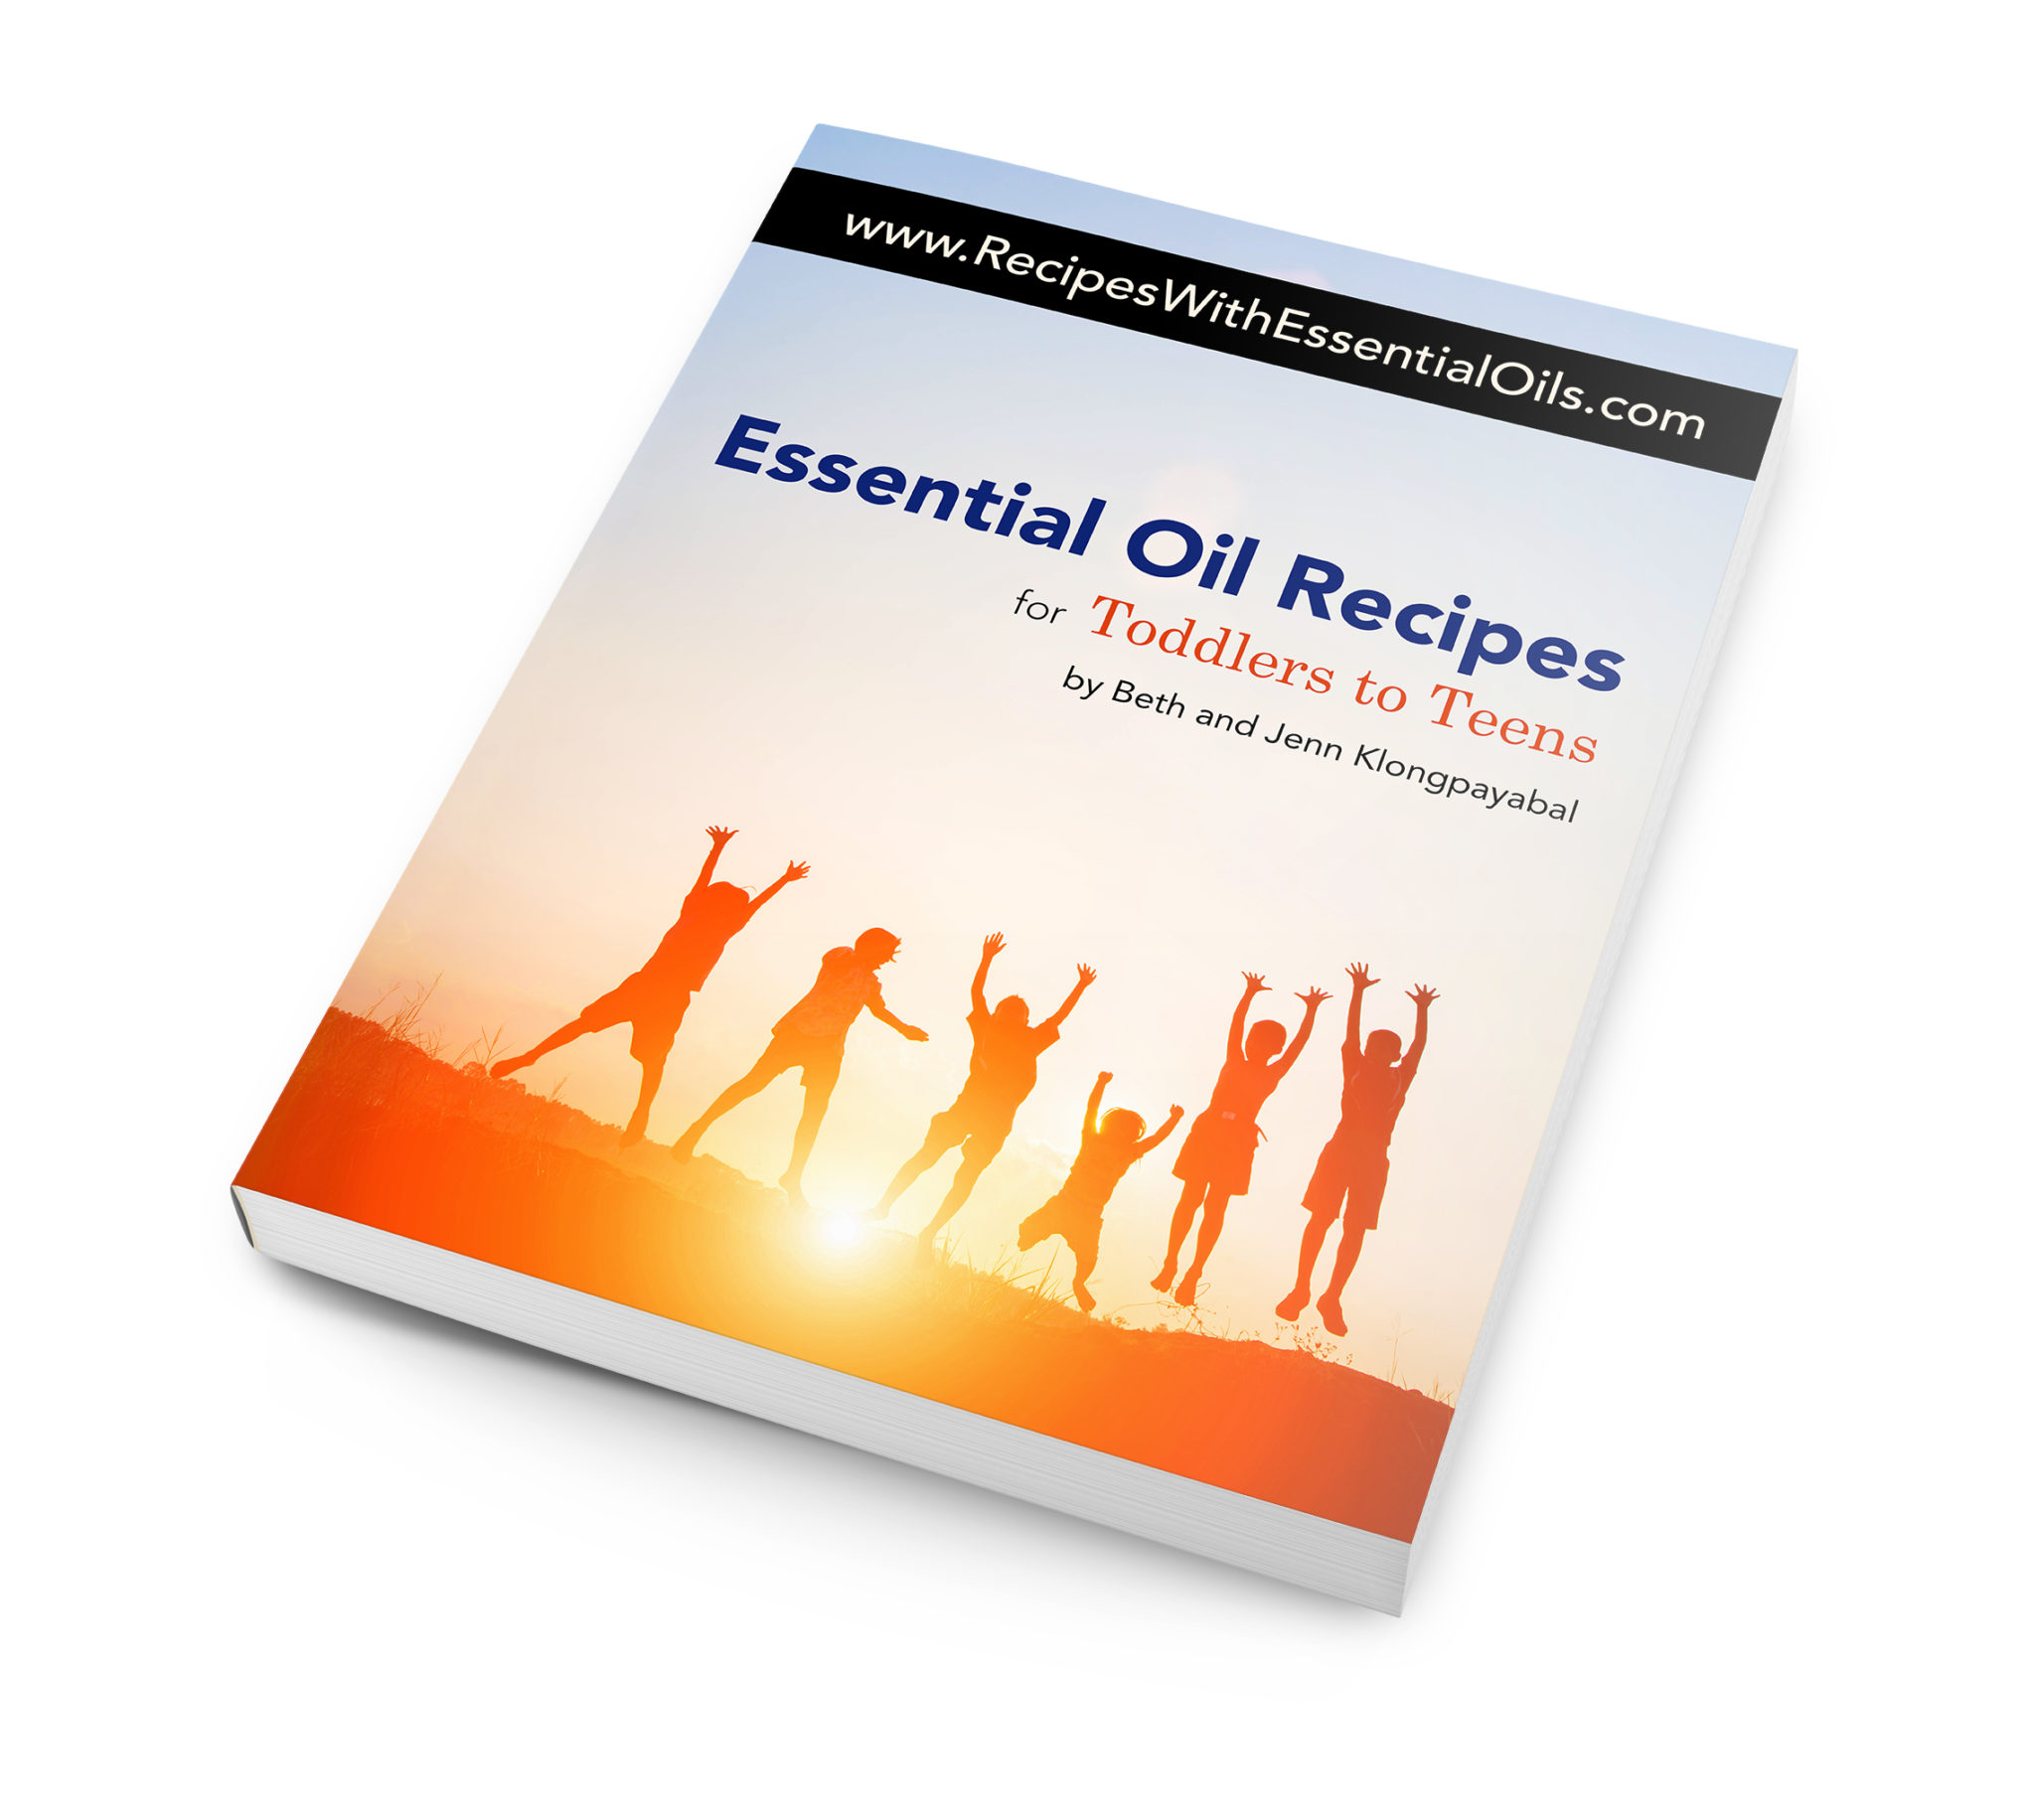 essential-oil-recipes-for-toddlers-and-teens-2